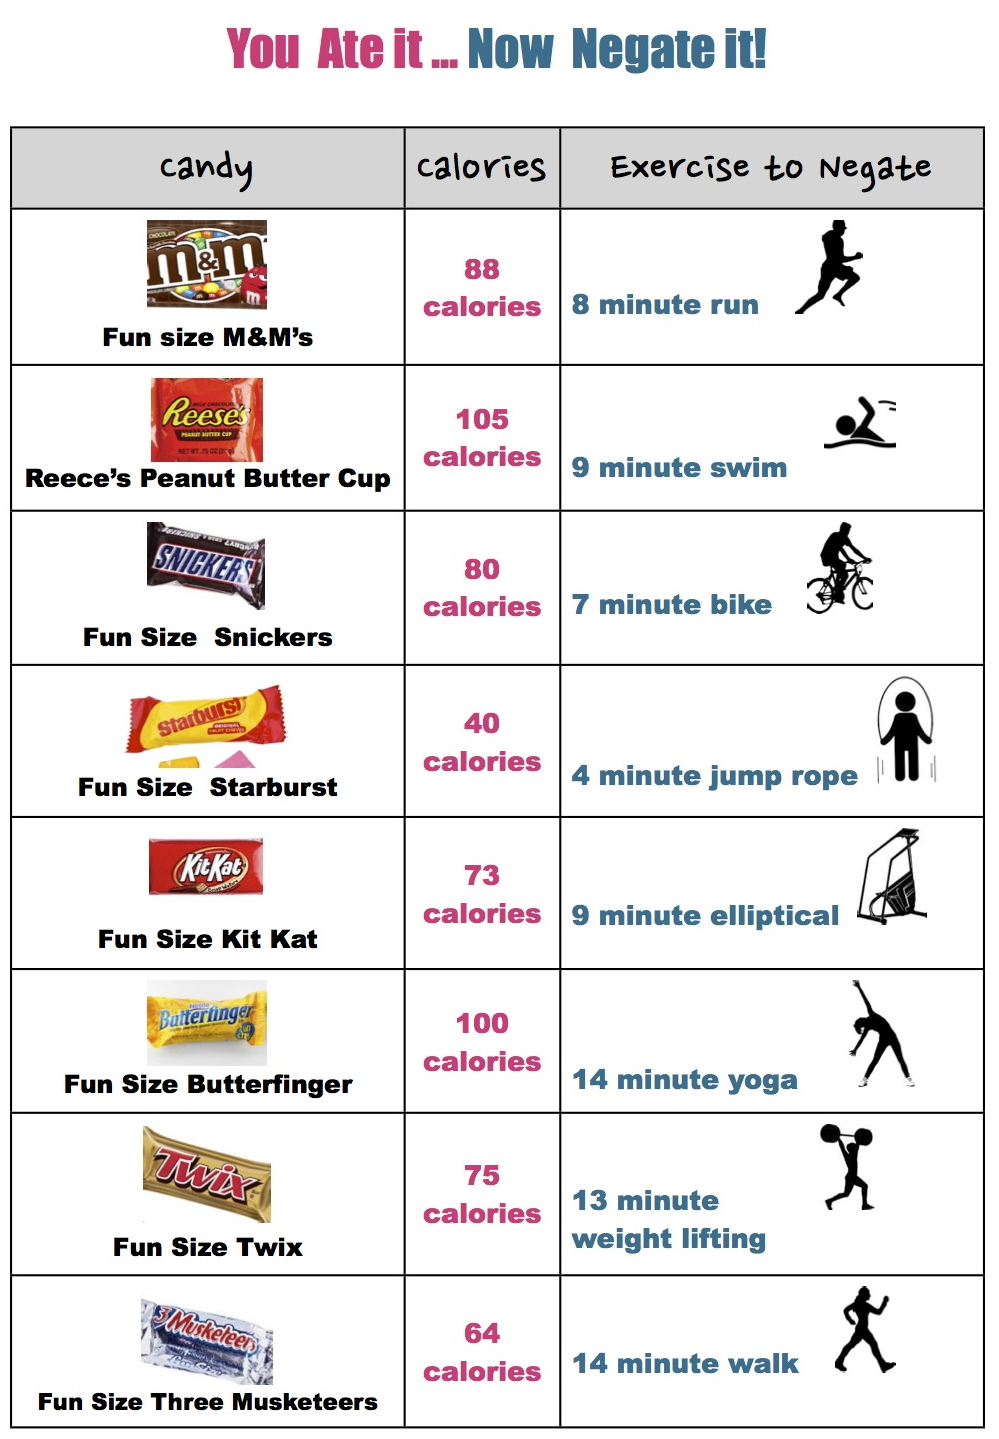 Fast 5: Work off that Halloween Candy! | For the Love of ...